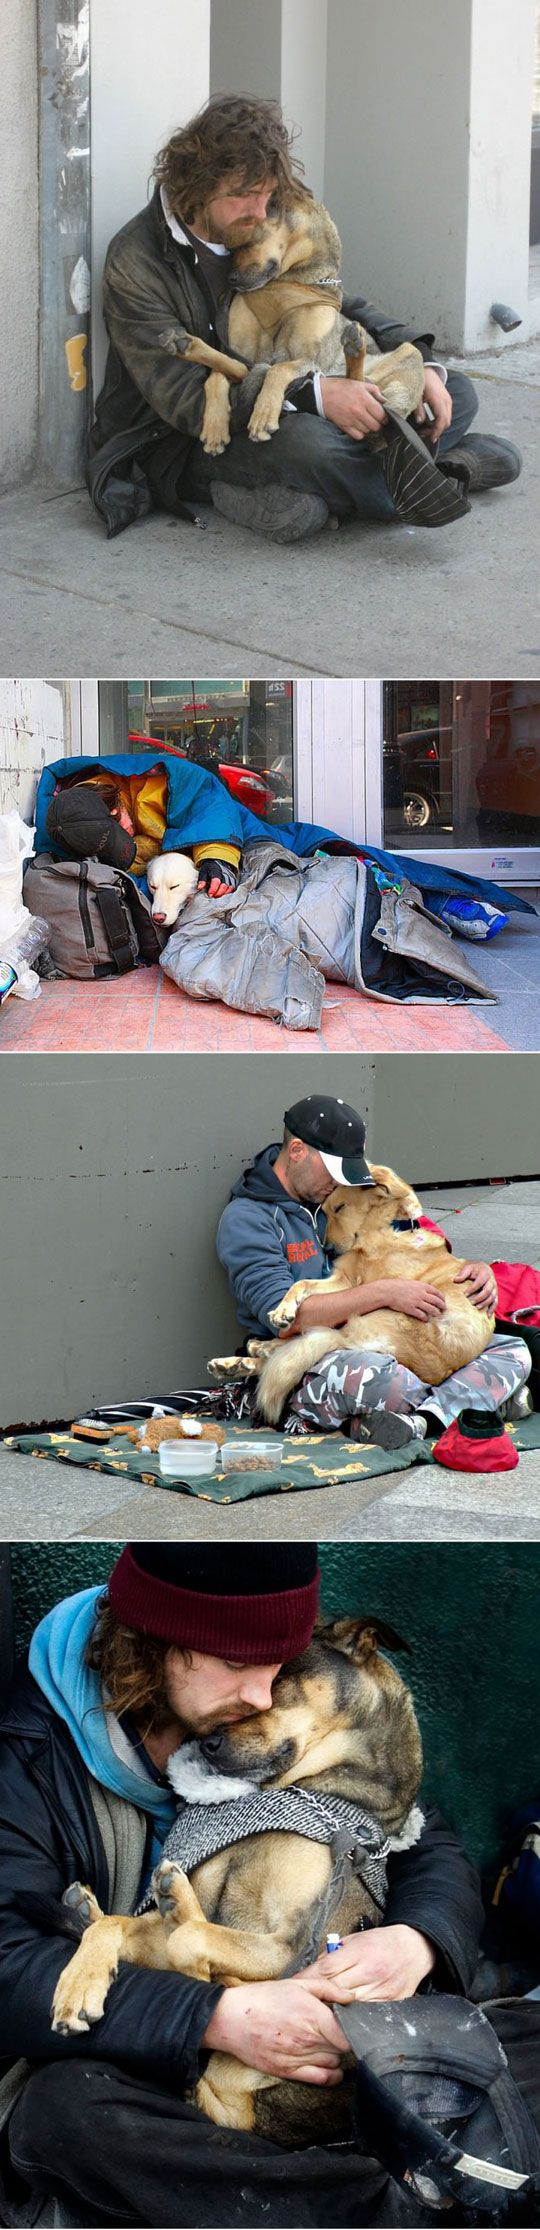 The companionship is heartwarming...the homelessness is so heartbreaking. Dogs Love Humans Regardless Of Their Status